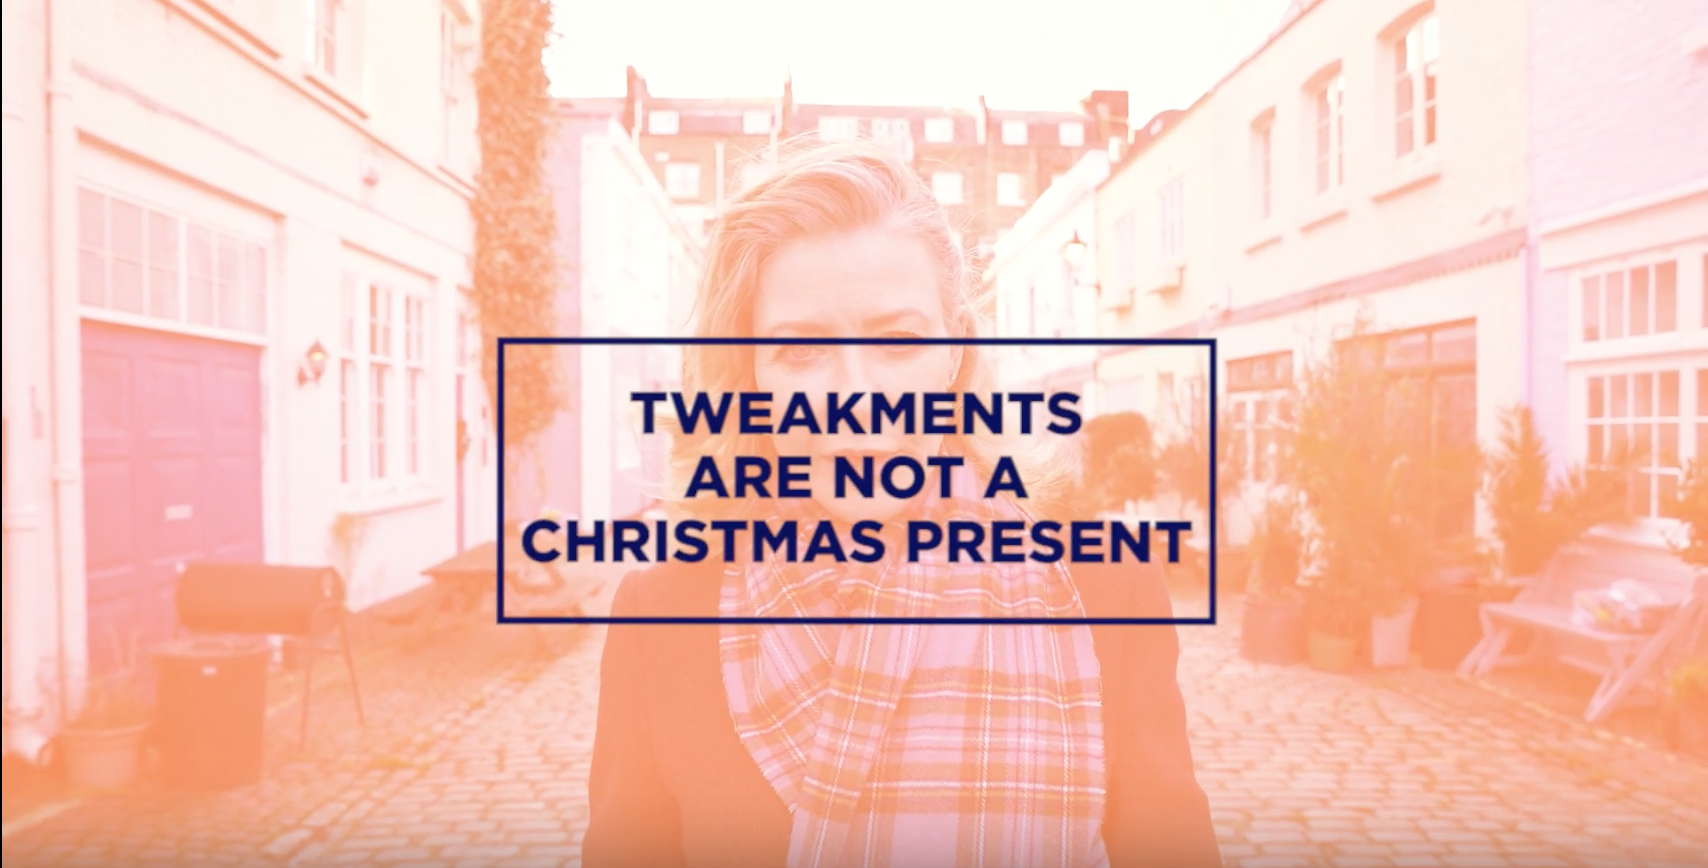 Screen grab from Alice's Tweakments Are Not A Christmas present video